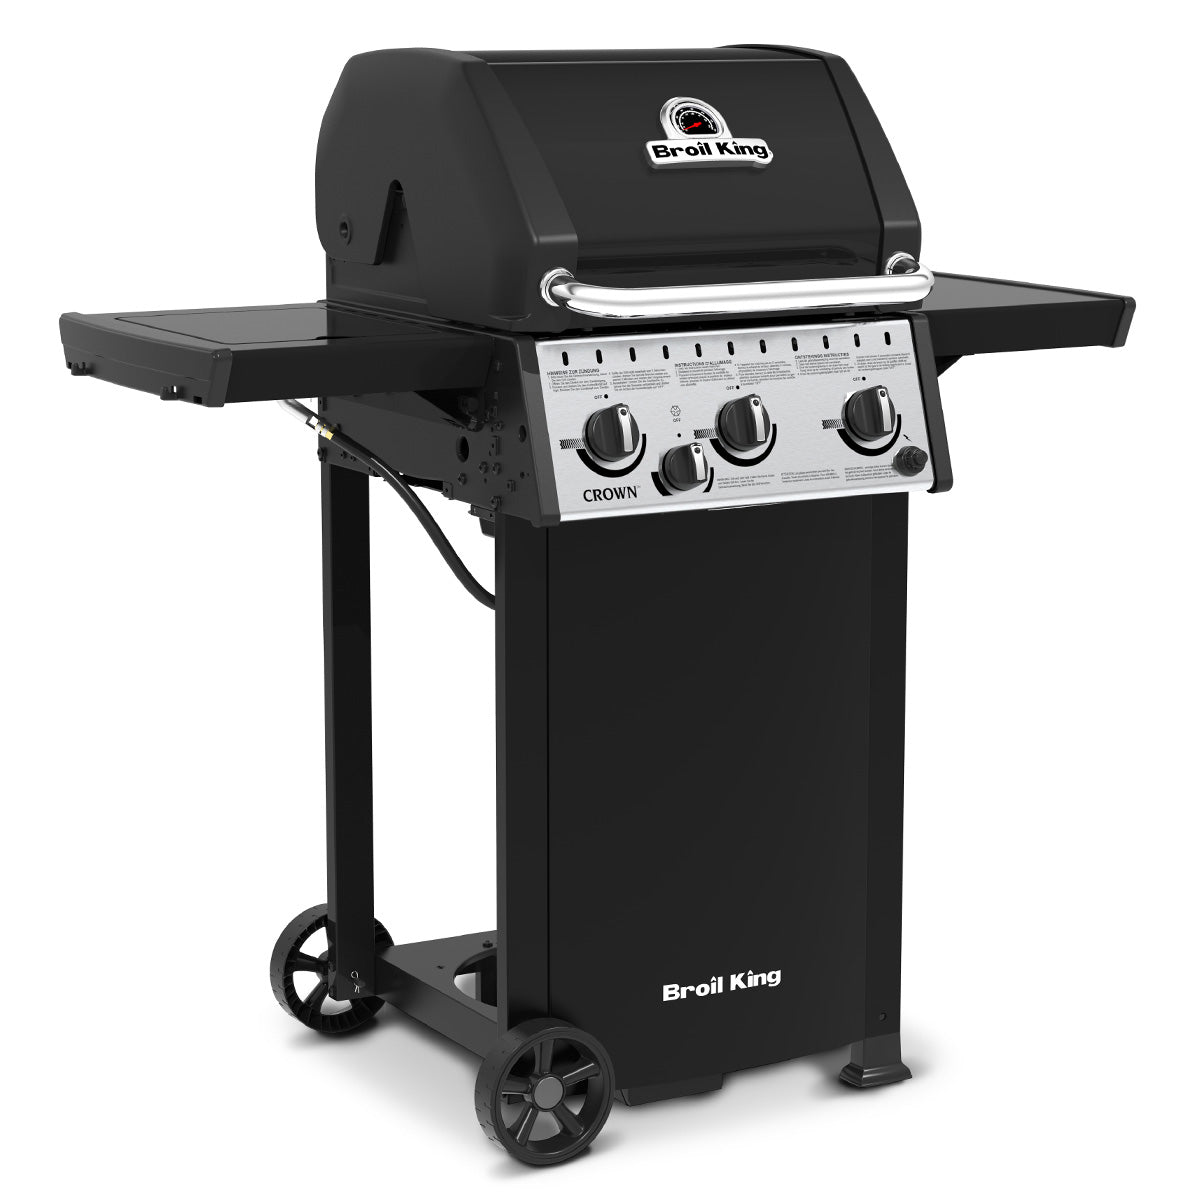 BROIL KING Gratar Crown 330